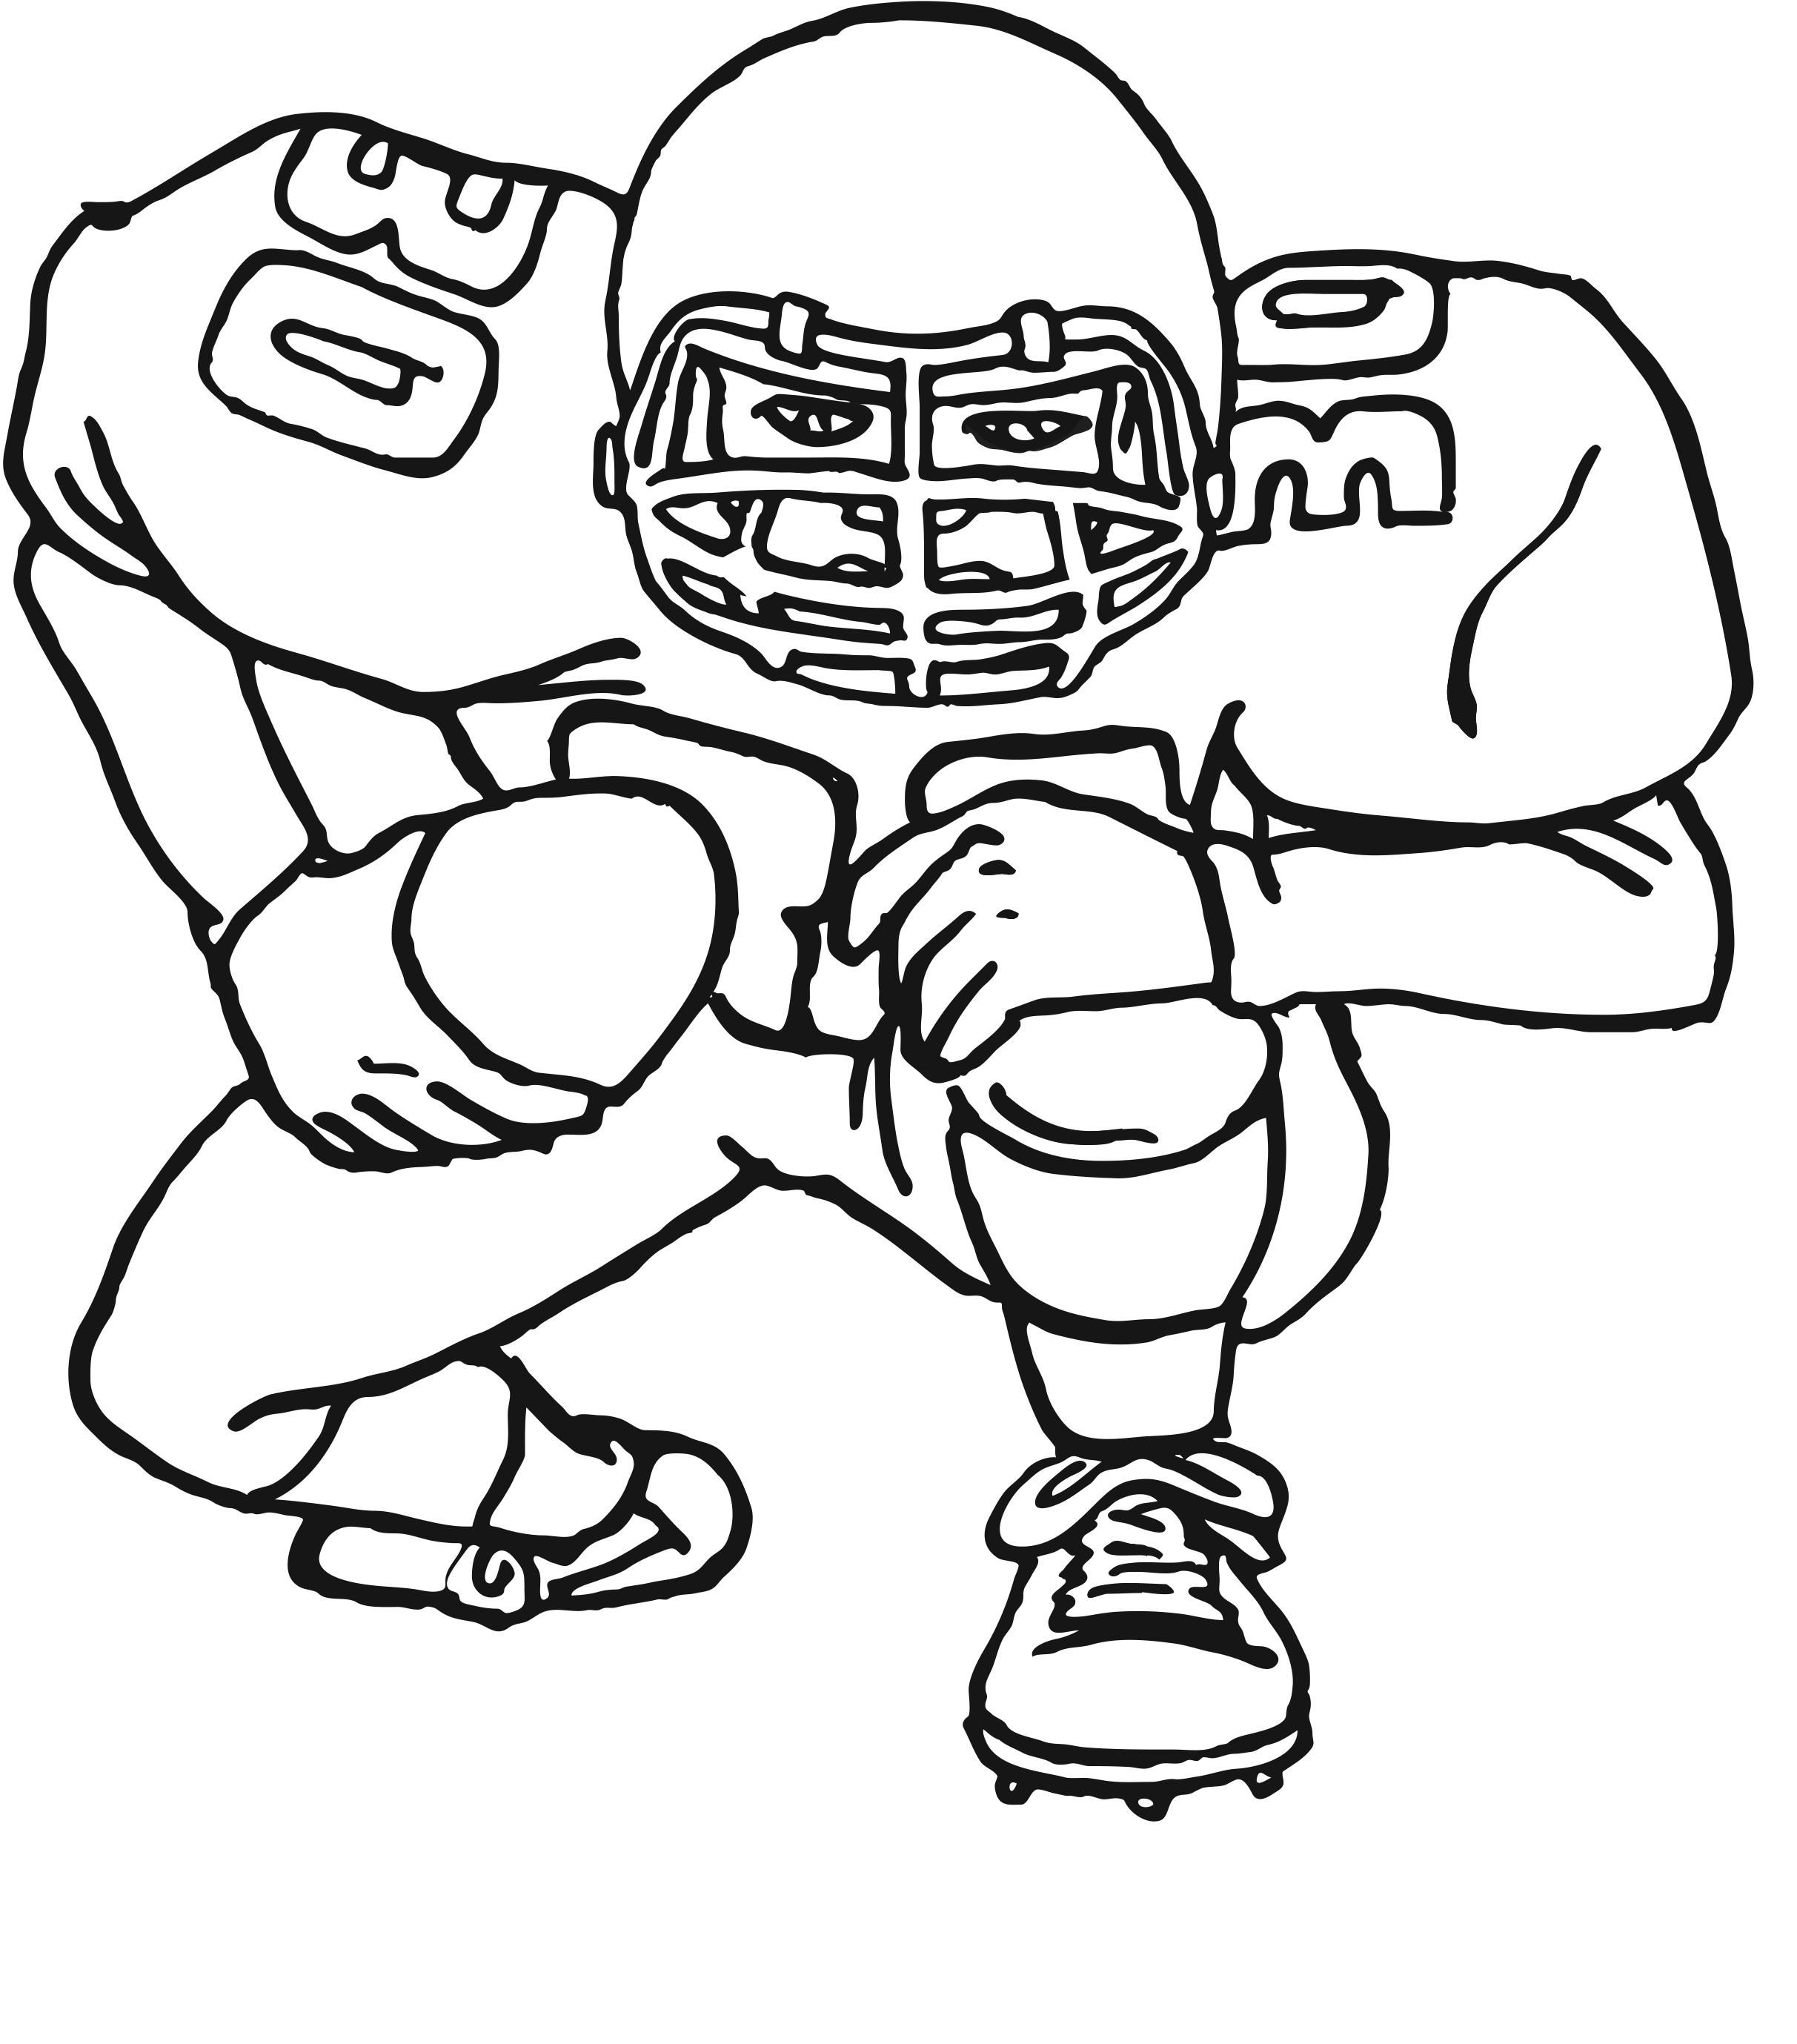 printable football pictures soccer ball coloring pages download and print for free football pictures printable